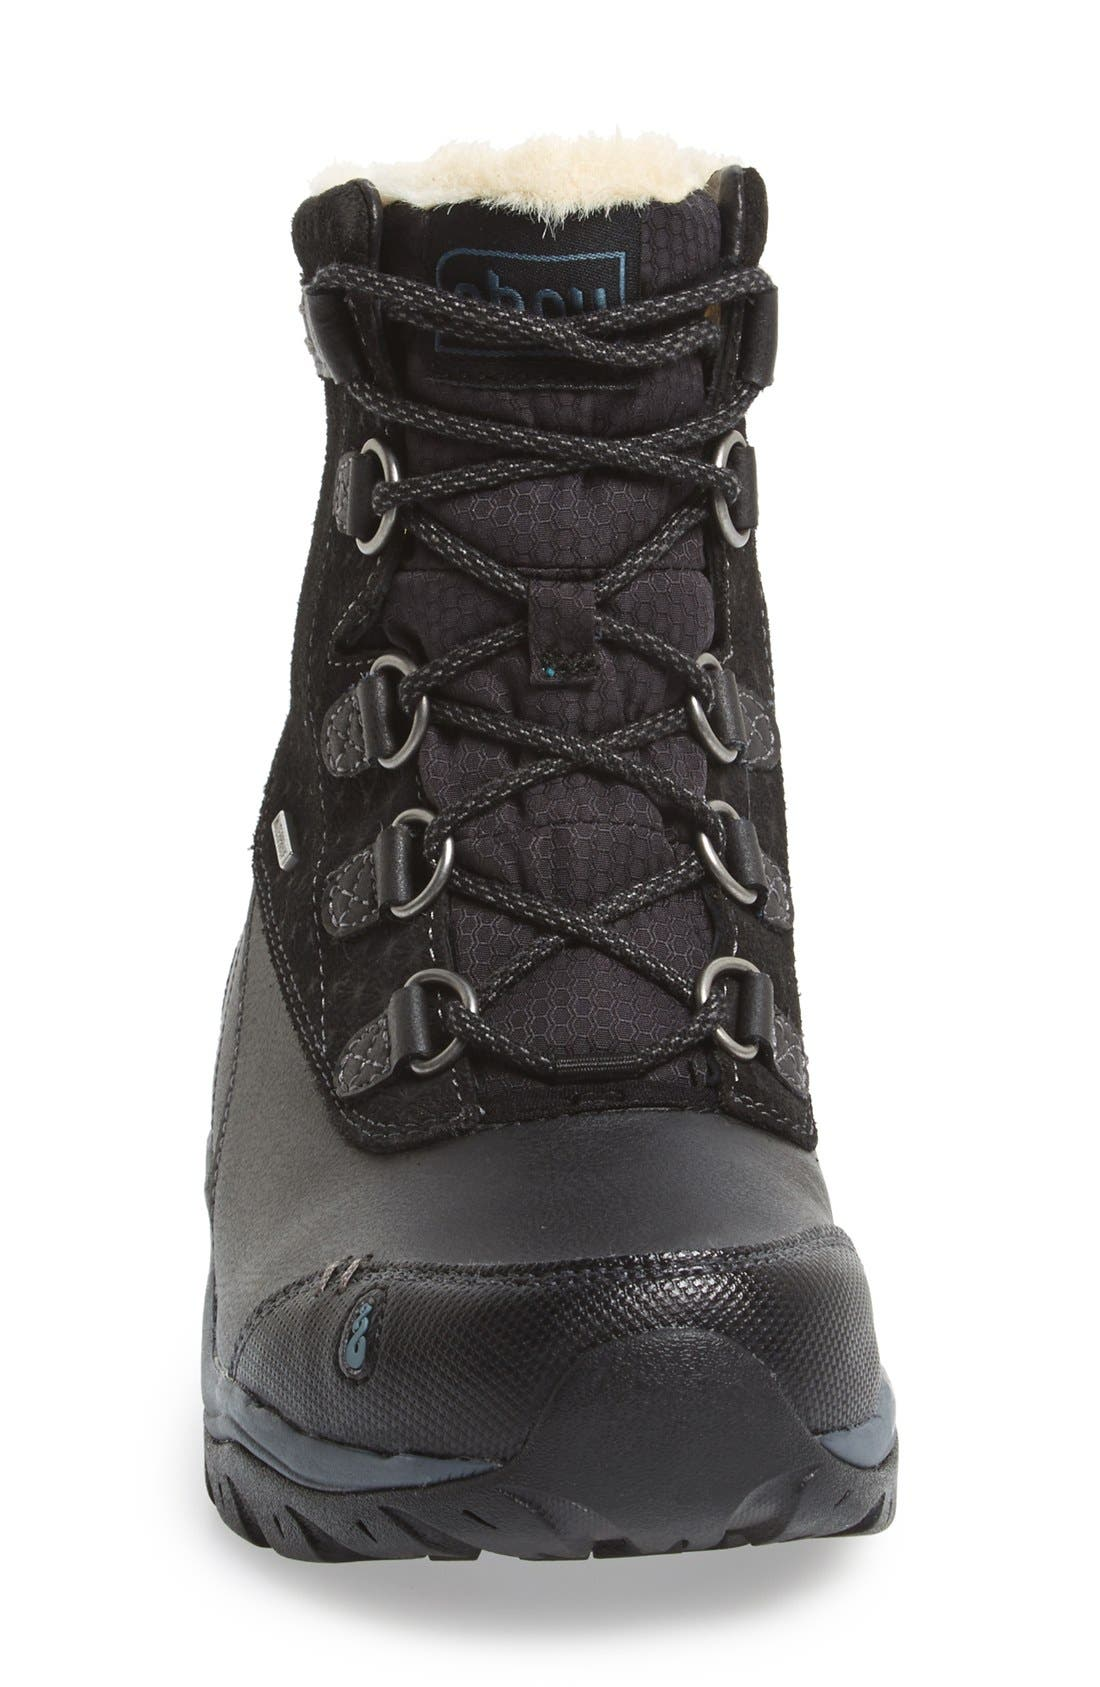 'Twain Harte' Insulated Waterproof Boot,                             Alternate thumbnail 4, color,                             001